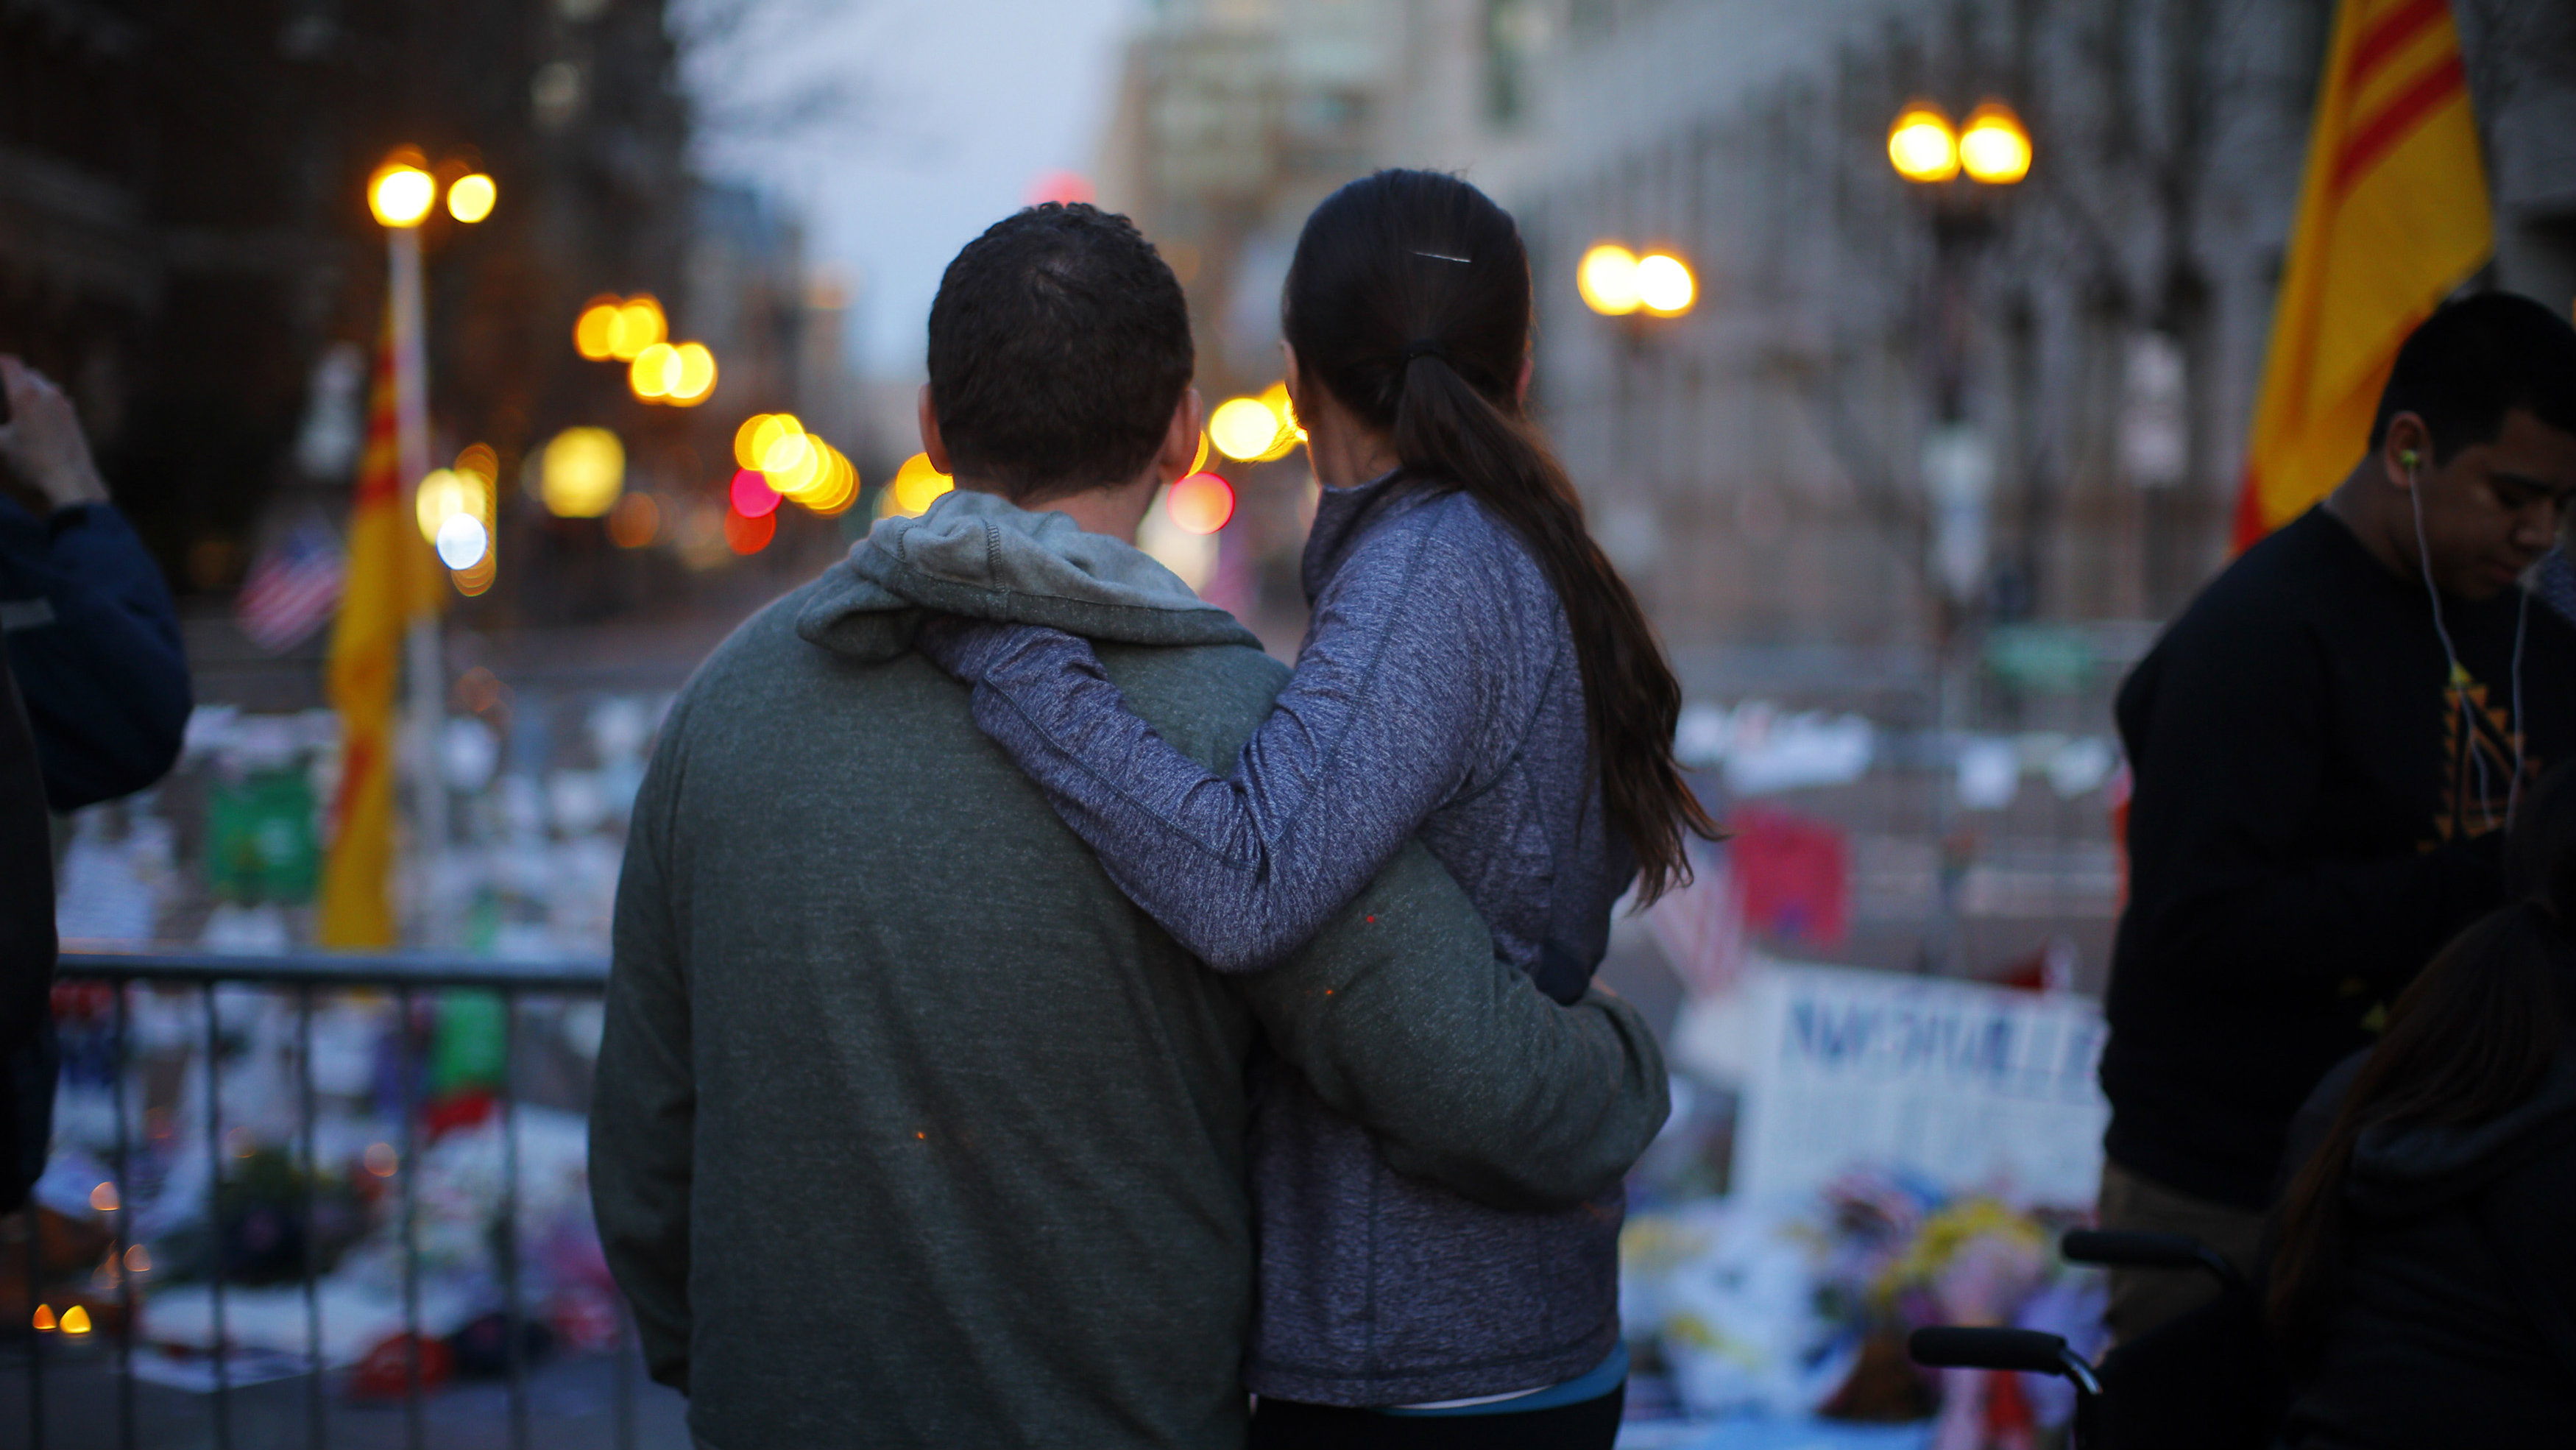 A couple embraces at a memorial on Boylston Street to the victims of the Boston Marathon bombings in Boston, Massachusetts April 21, 2013. Two explosions hit the Boston Marathon on April 15 killing at least three people and injuring over 100 others. REUTERS/Brian Snyder (UNITED STATES - Tags: CRIME LAW)